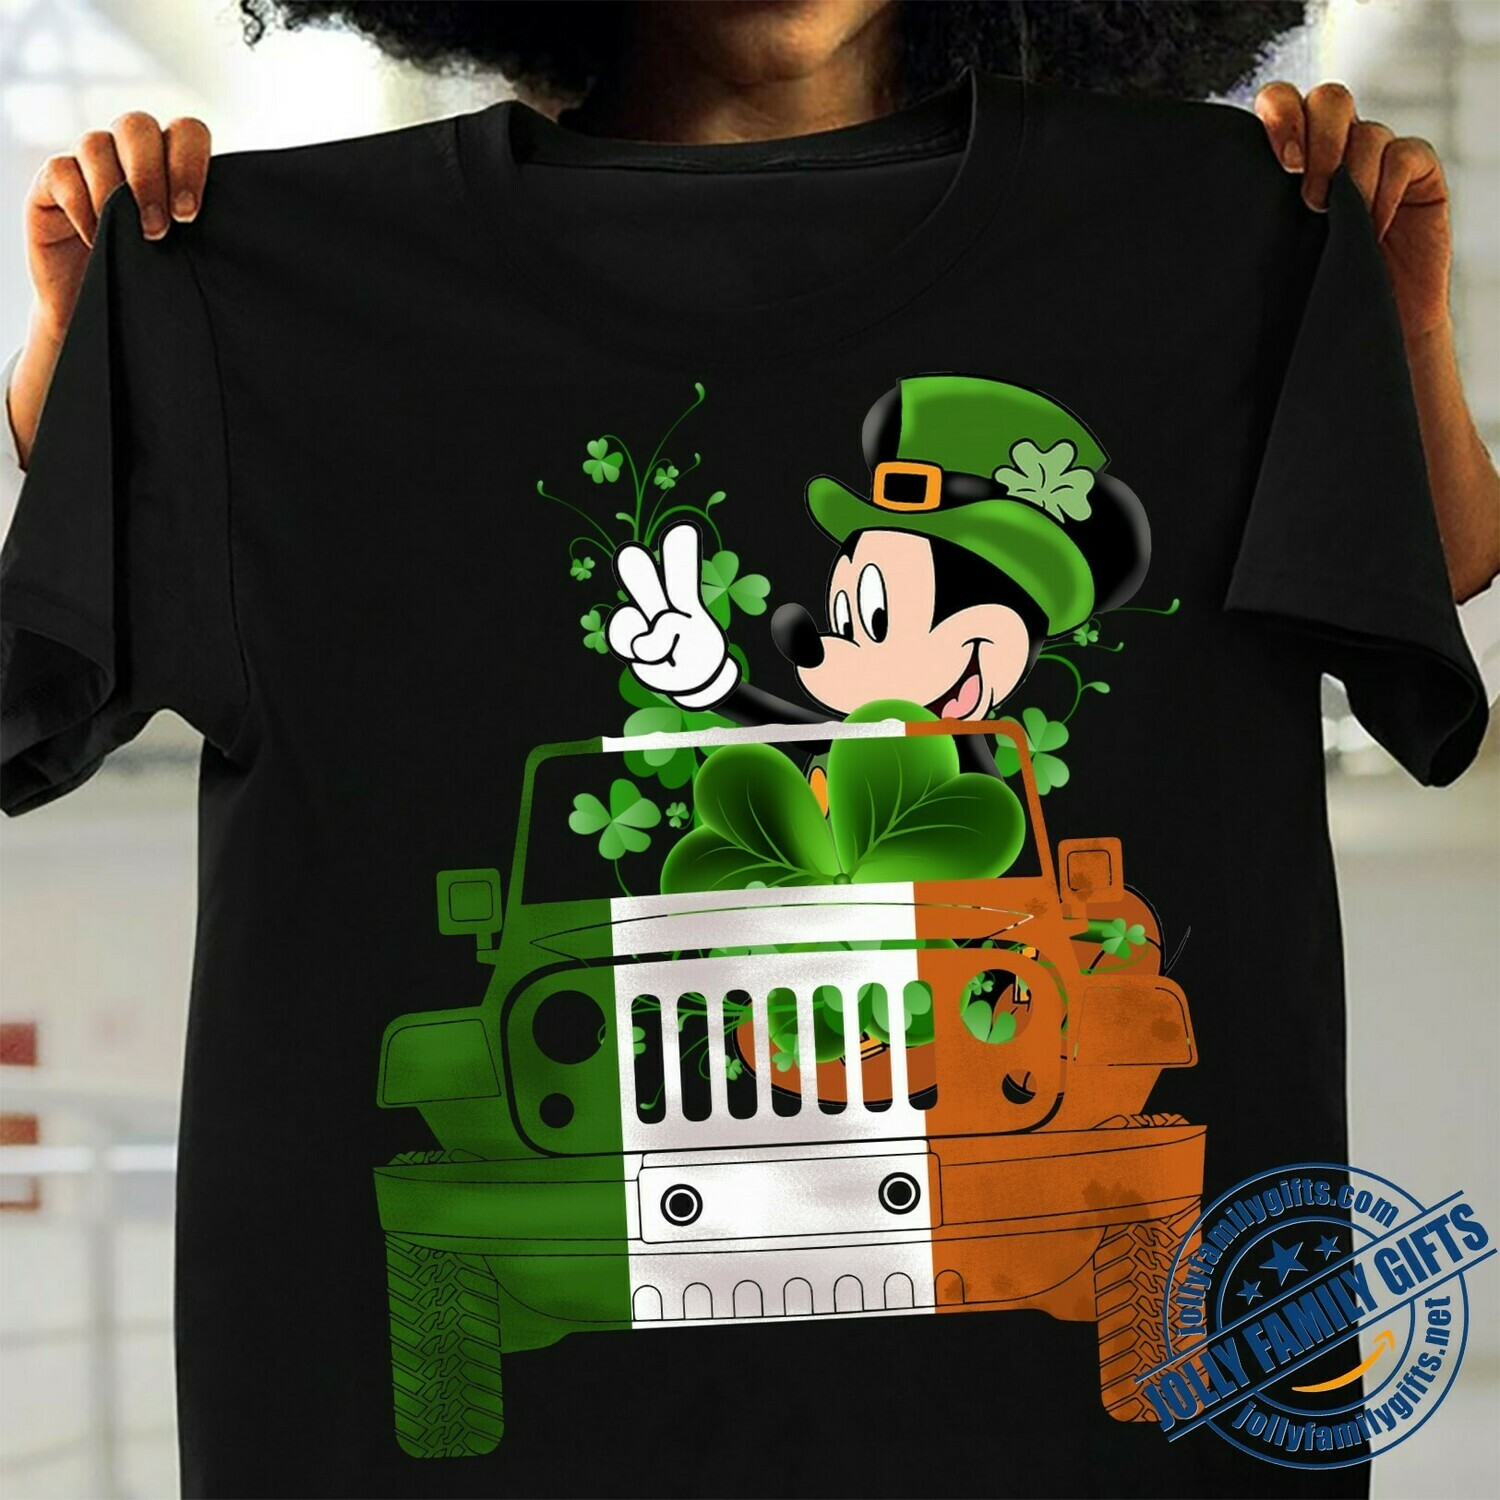 Green Disney Mickey Mouse Driving Jeep Car Shamrock Four Leaf Clover Happy St. Patrick's Day Luck Charm of the Irish Disneyland  Unisex T-Shirt Hoodie Sweatshirt Sweater Plus Size for Ladies Women Men